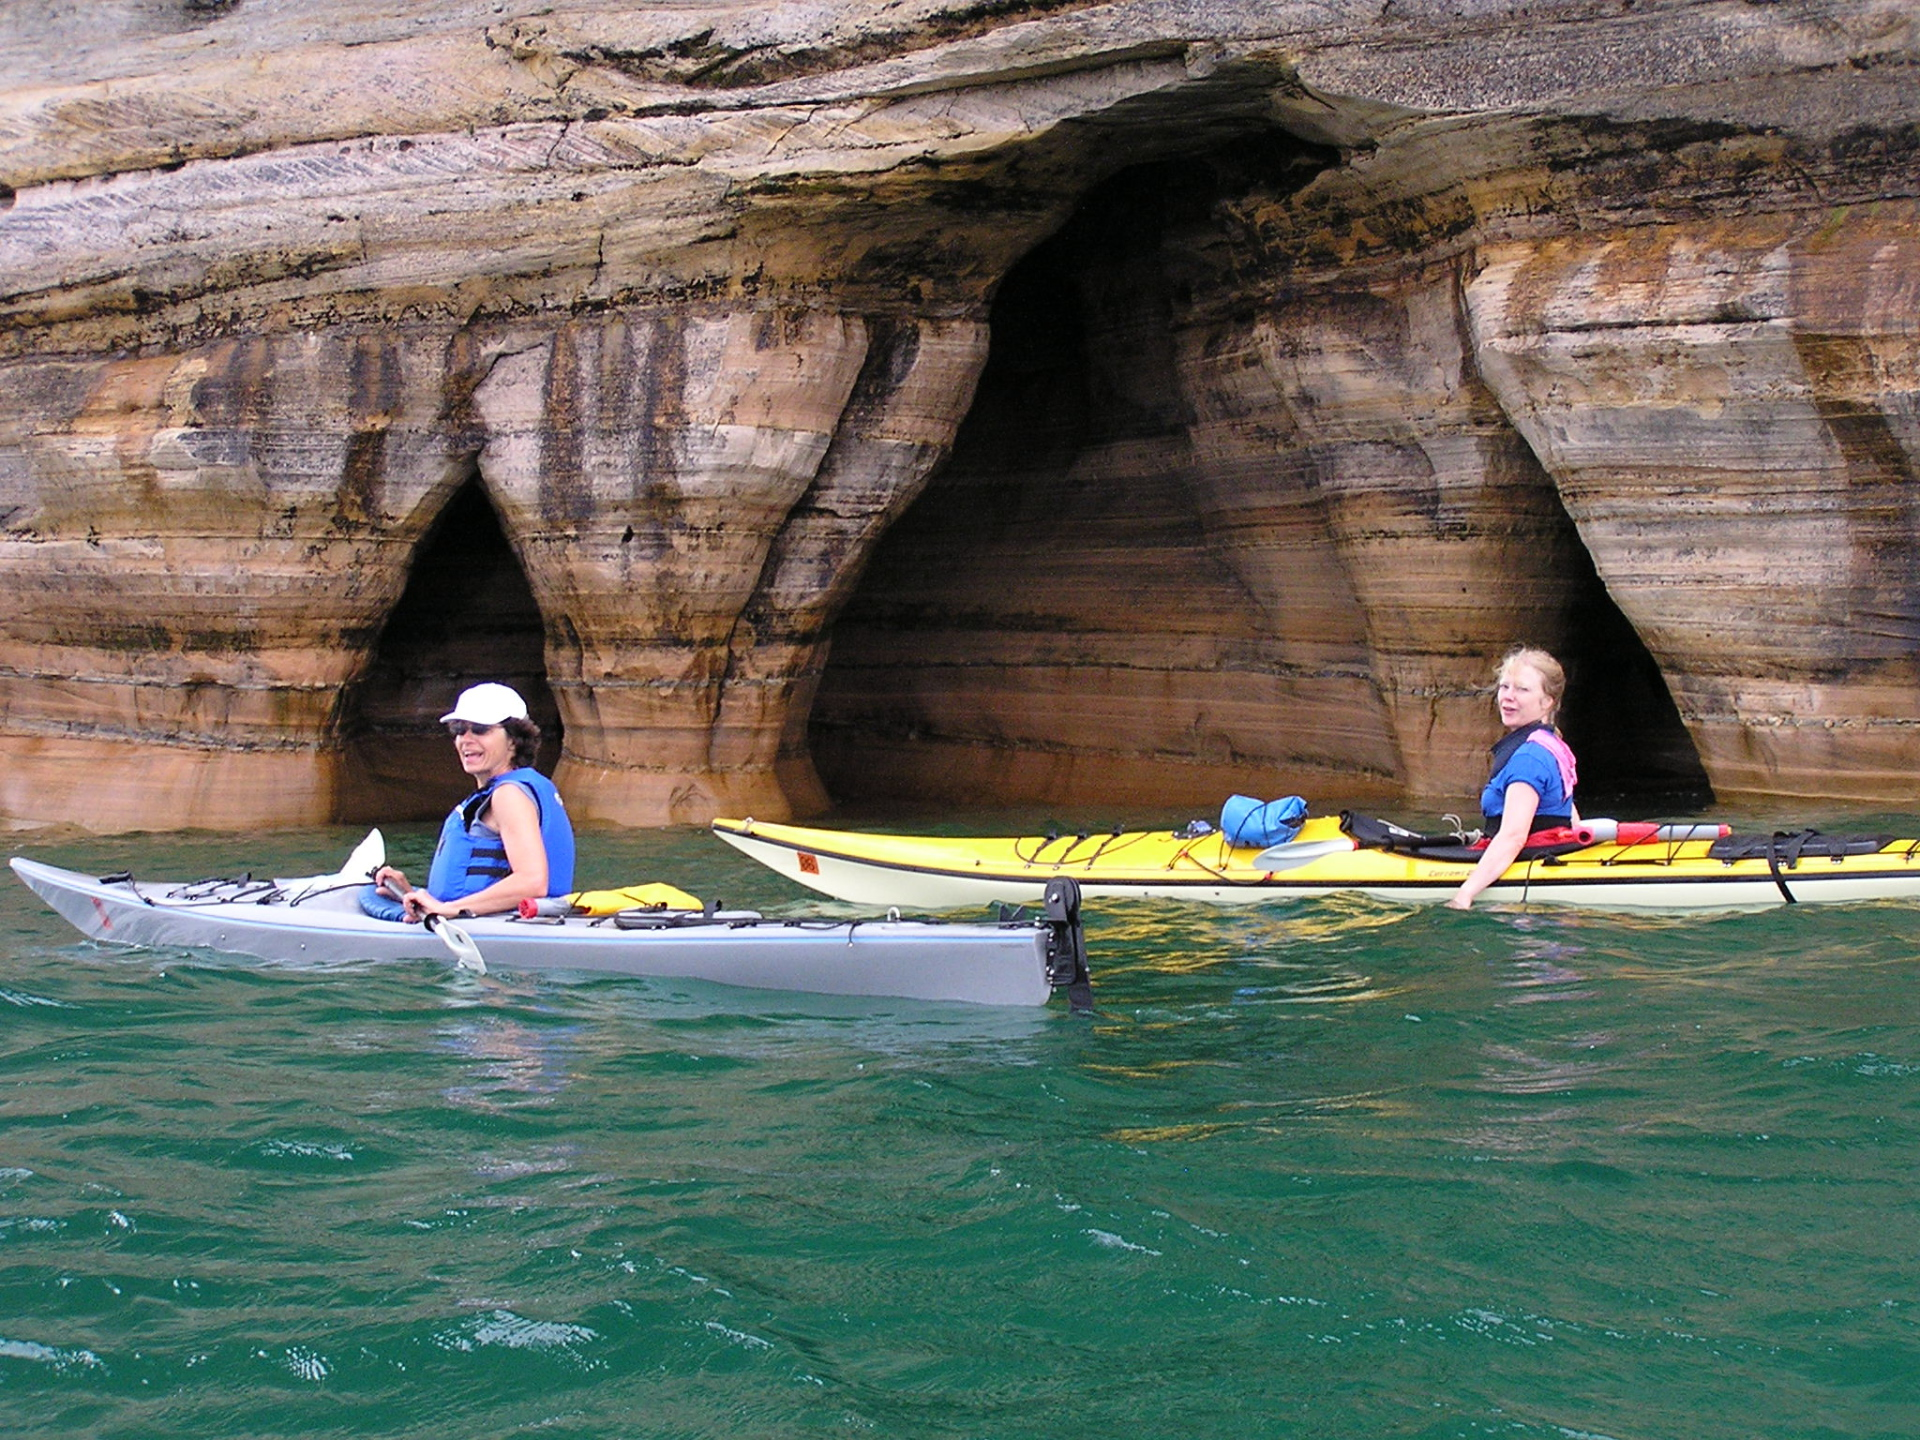 Jini and Annie pause after poking into shoreline caves.Pictured Rocks National Lakeshore, Michigan: chapter 38, You must only to love them. http://mershon.wordpress.com